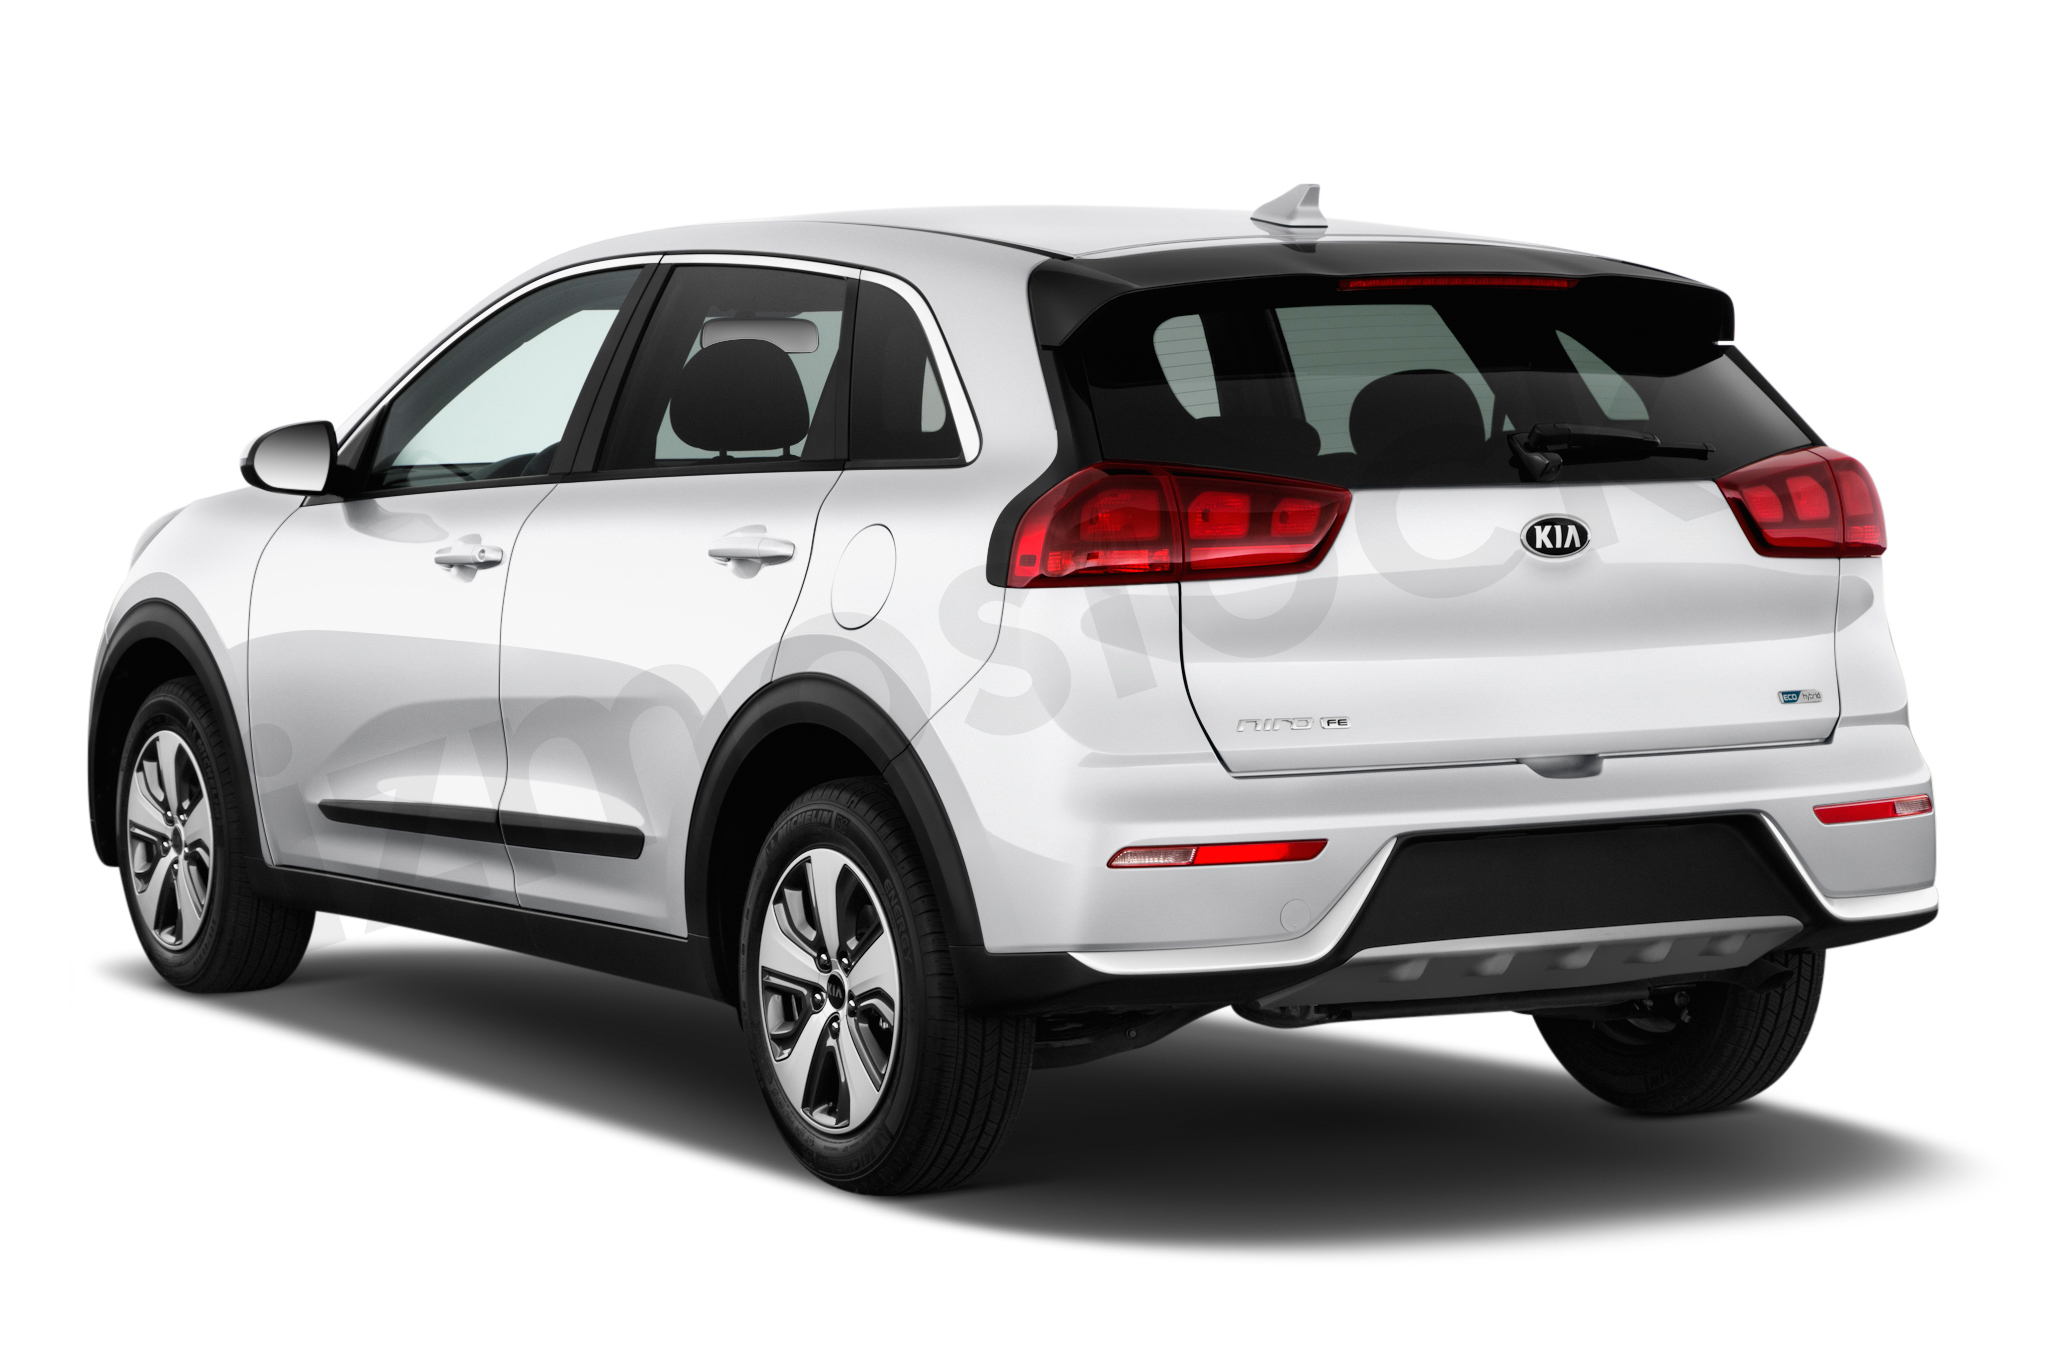 compact crossover hybrid the 2017 kia niro pictures specs review and price. Black Bedroom Furniture Sets. Home Design Ideas